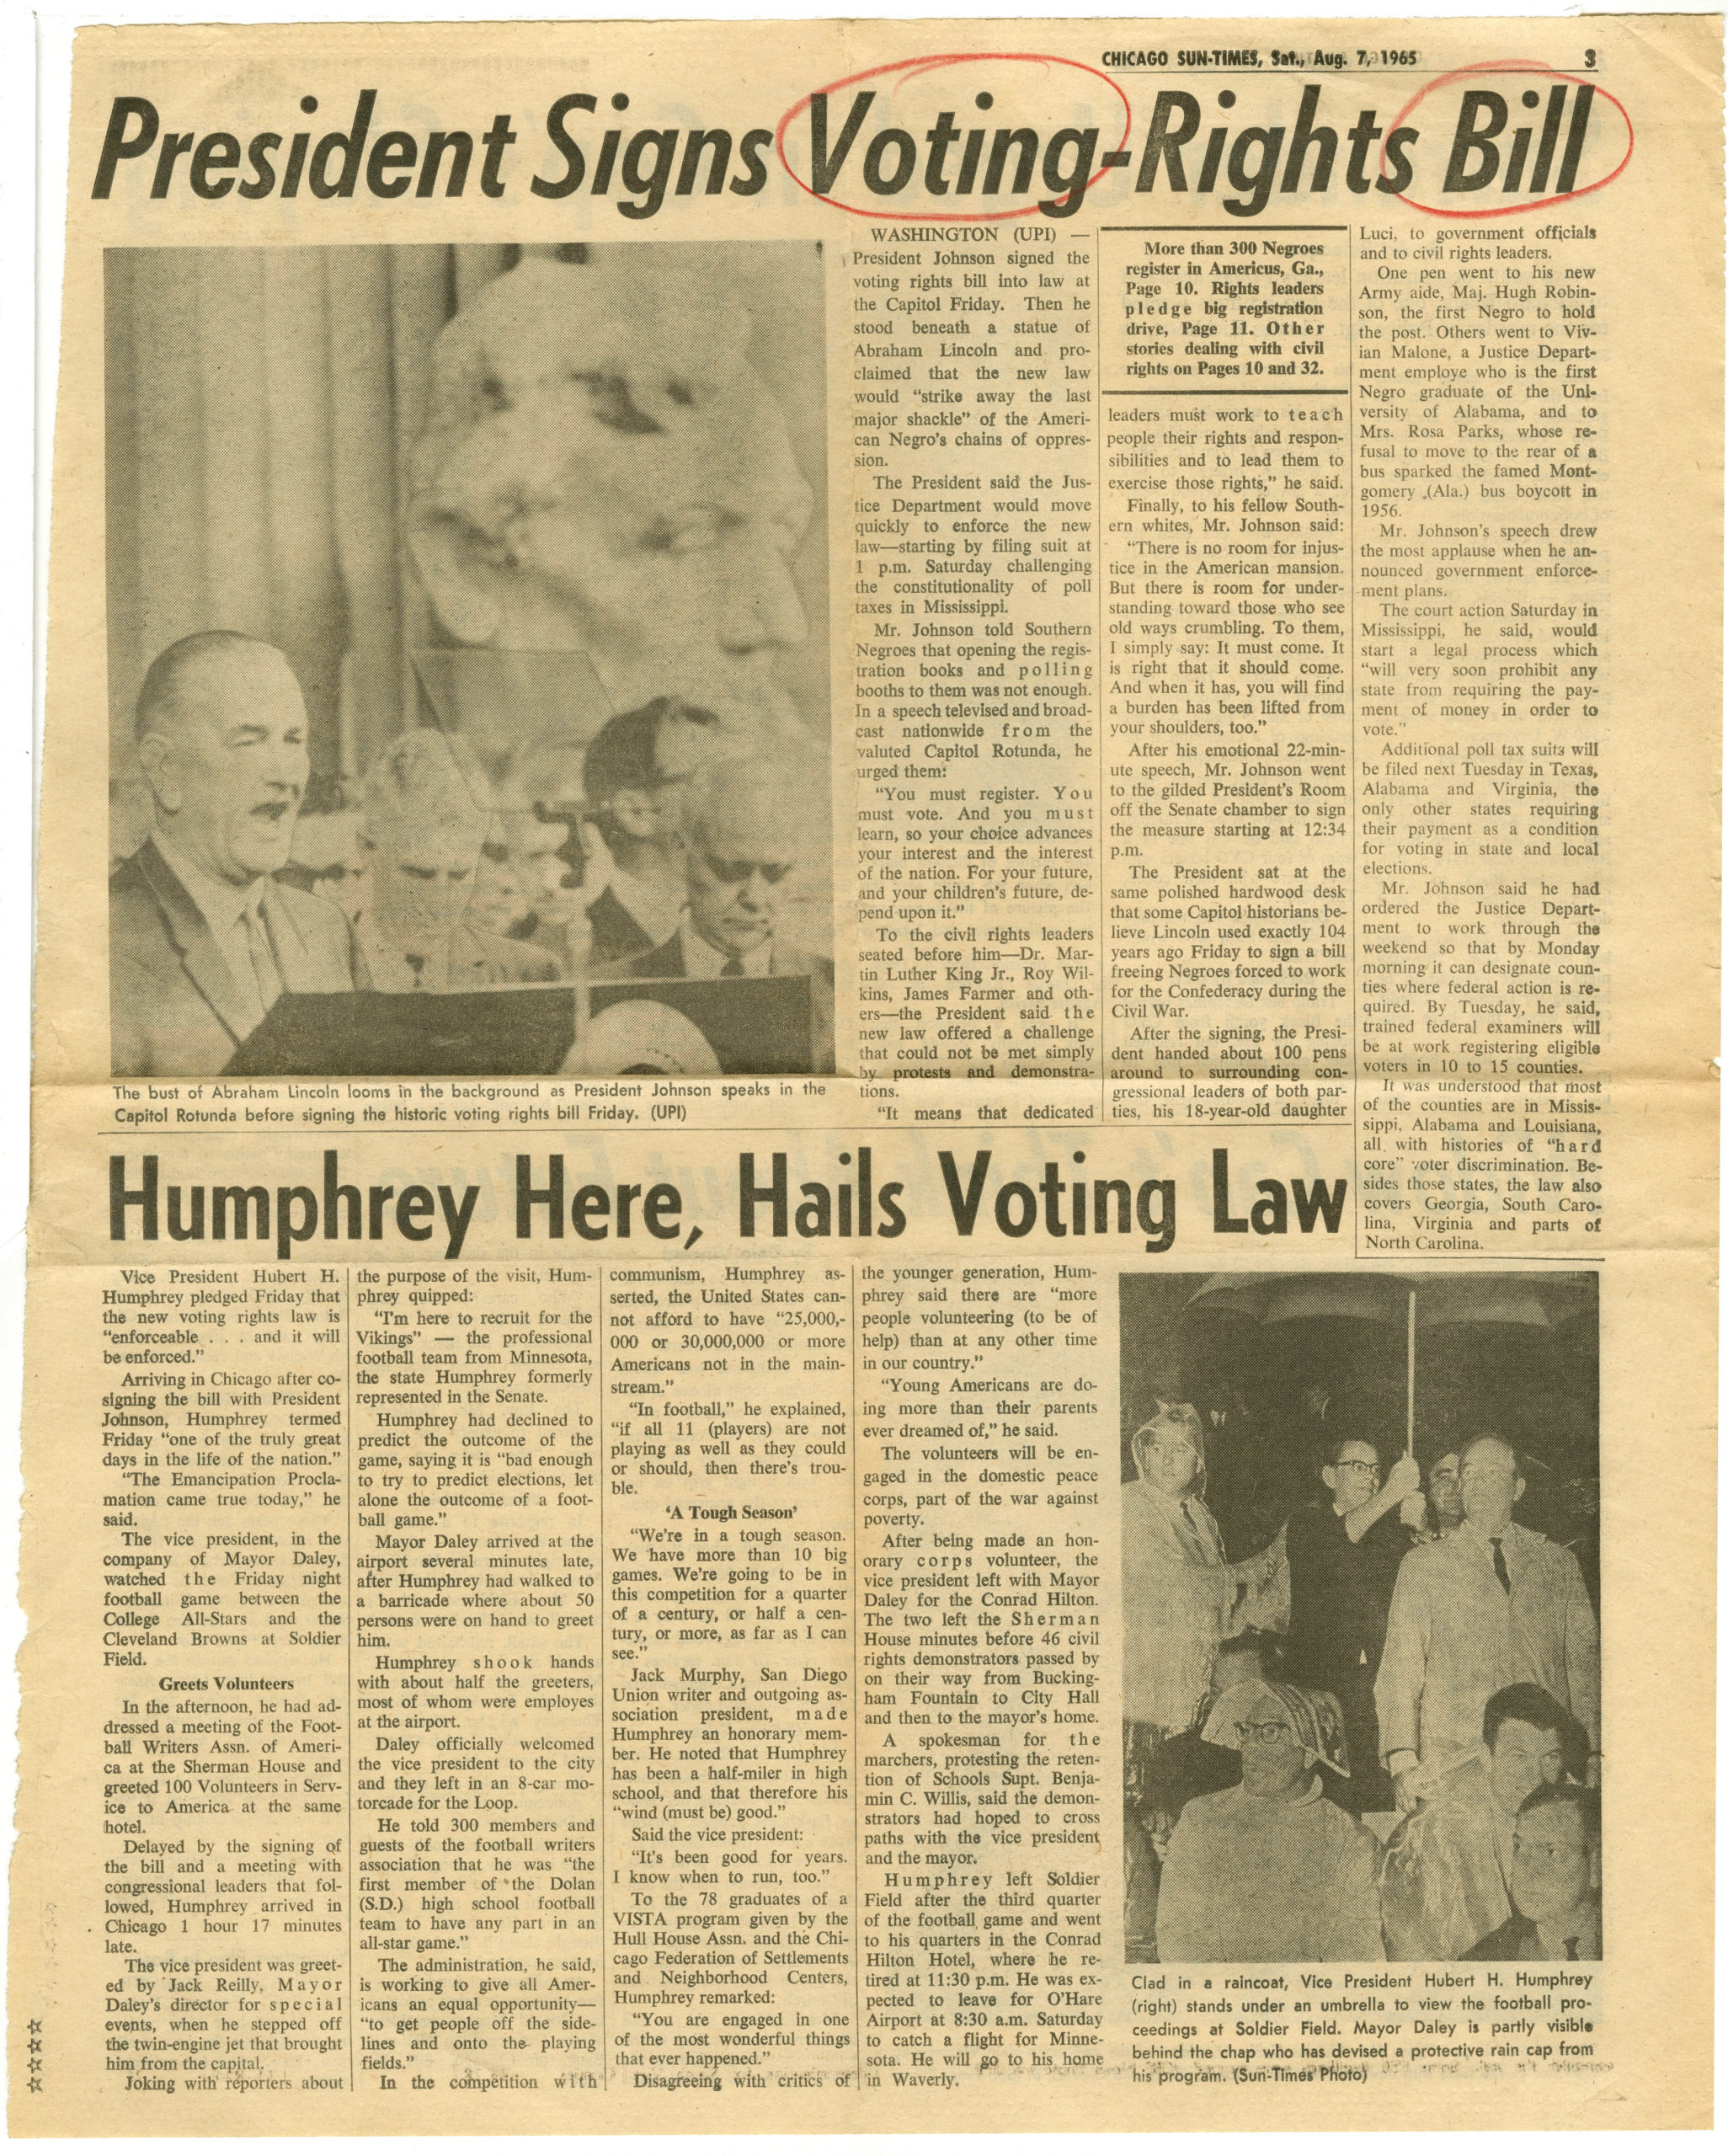 President Signs Voting-Rights Bill, Chicago Sun-Times1965 August 7Johnson Publishing Company Clippings File Collection